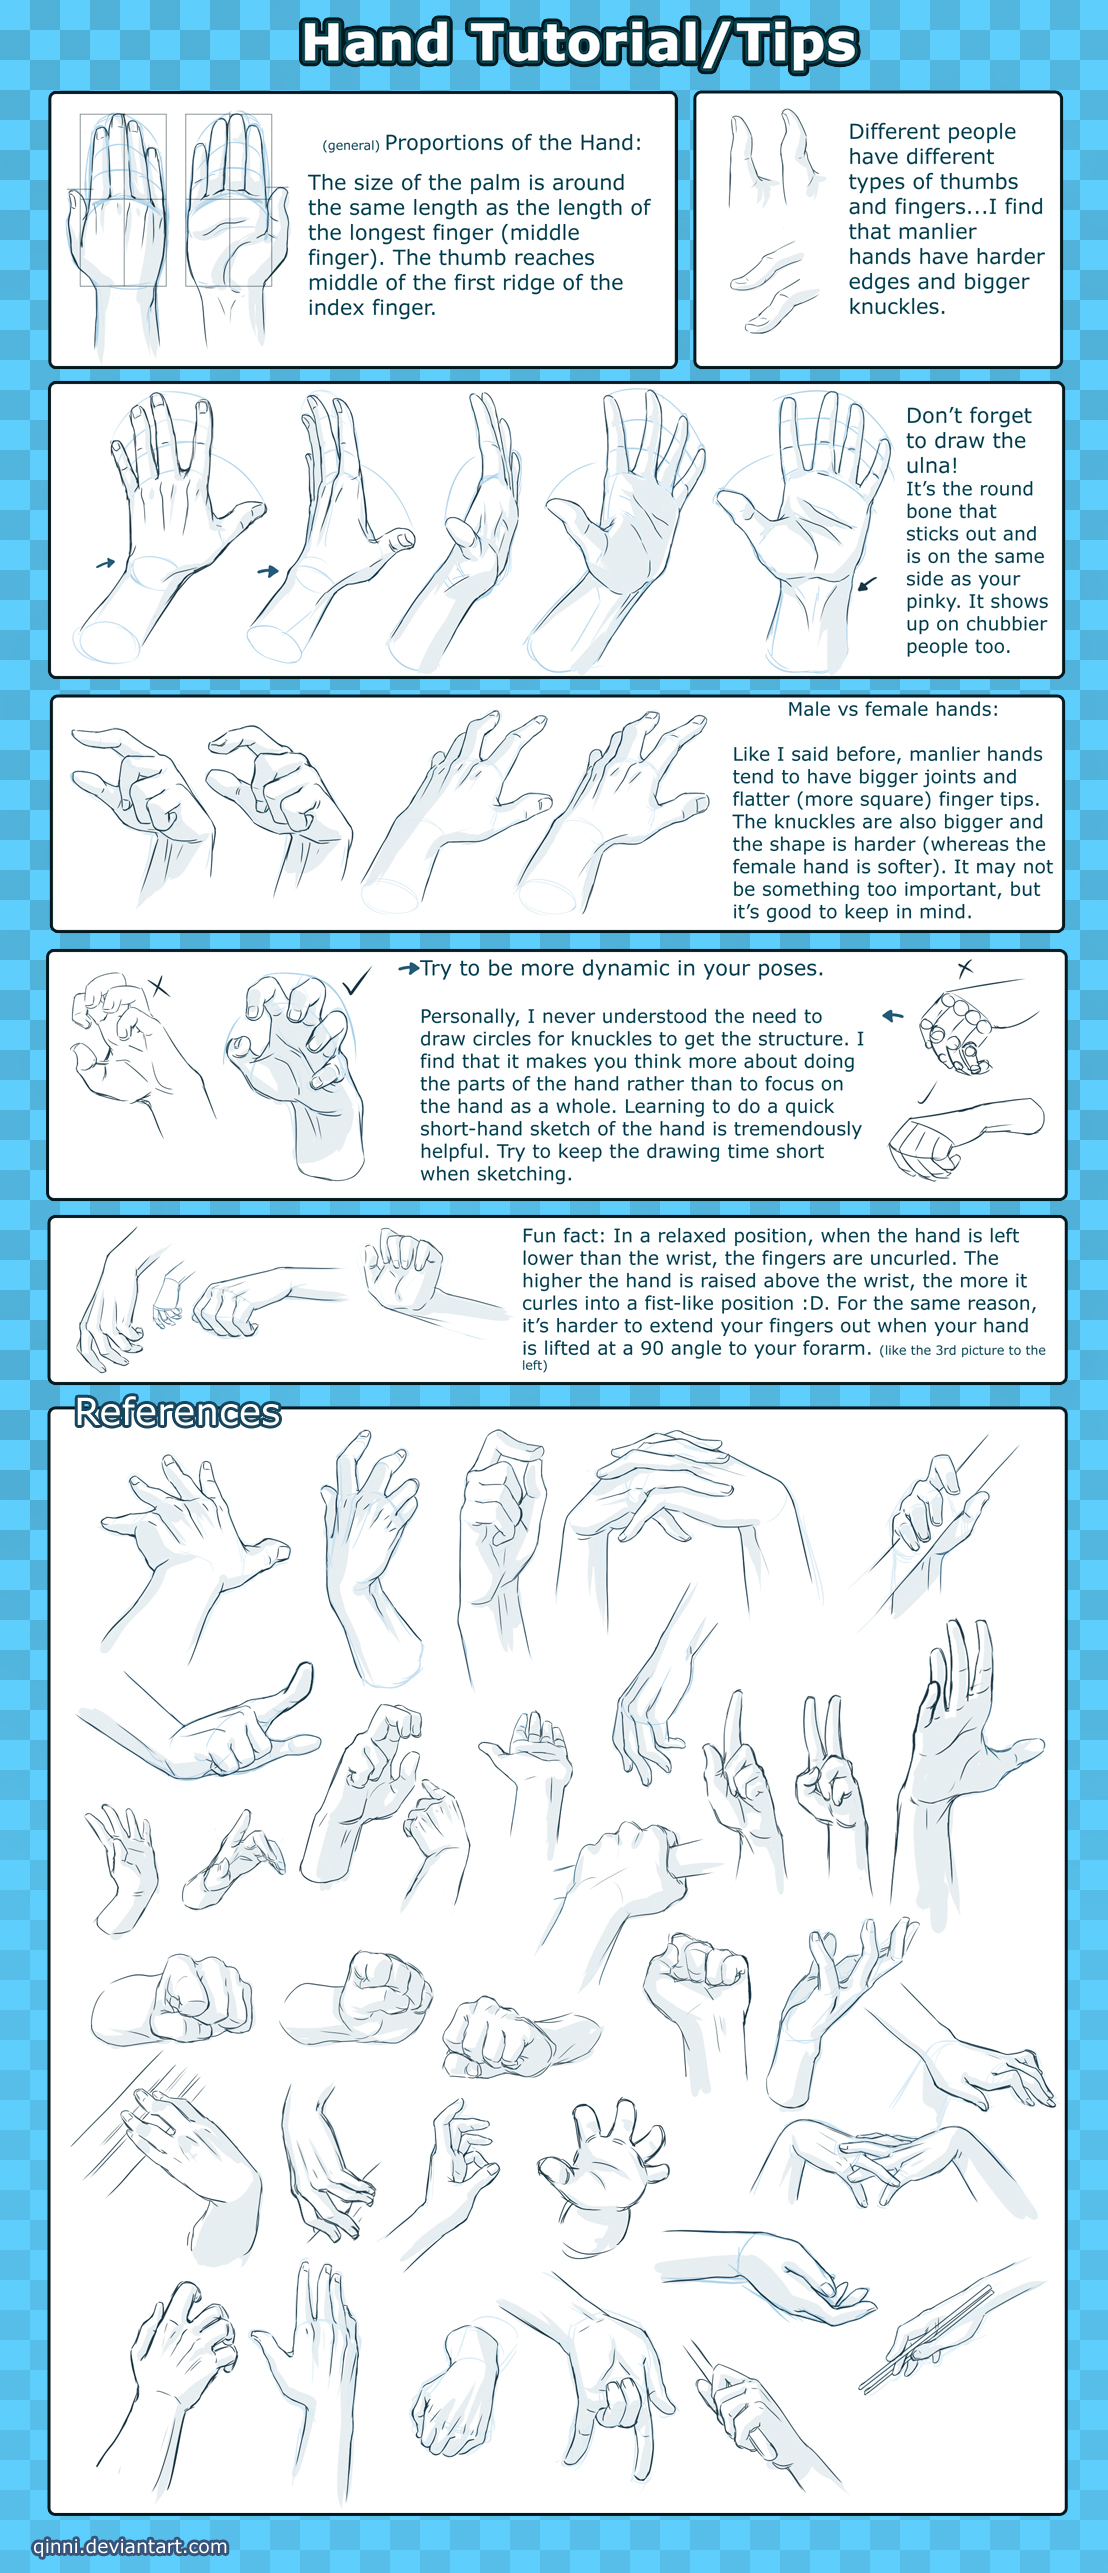 hand_tutorial__tips_reference__by_qinni-d33lcb1